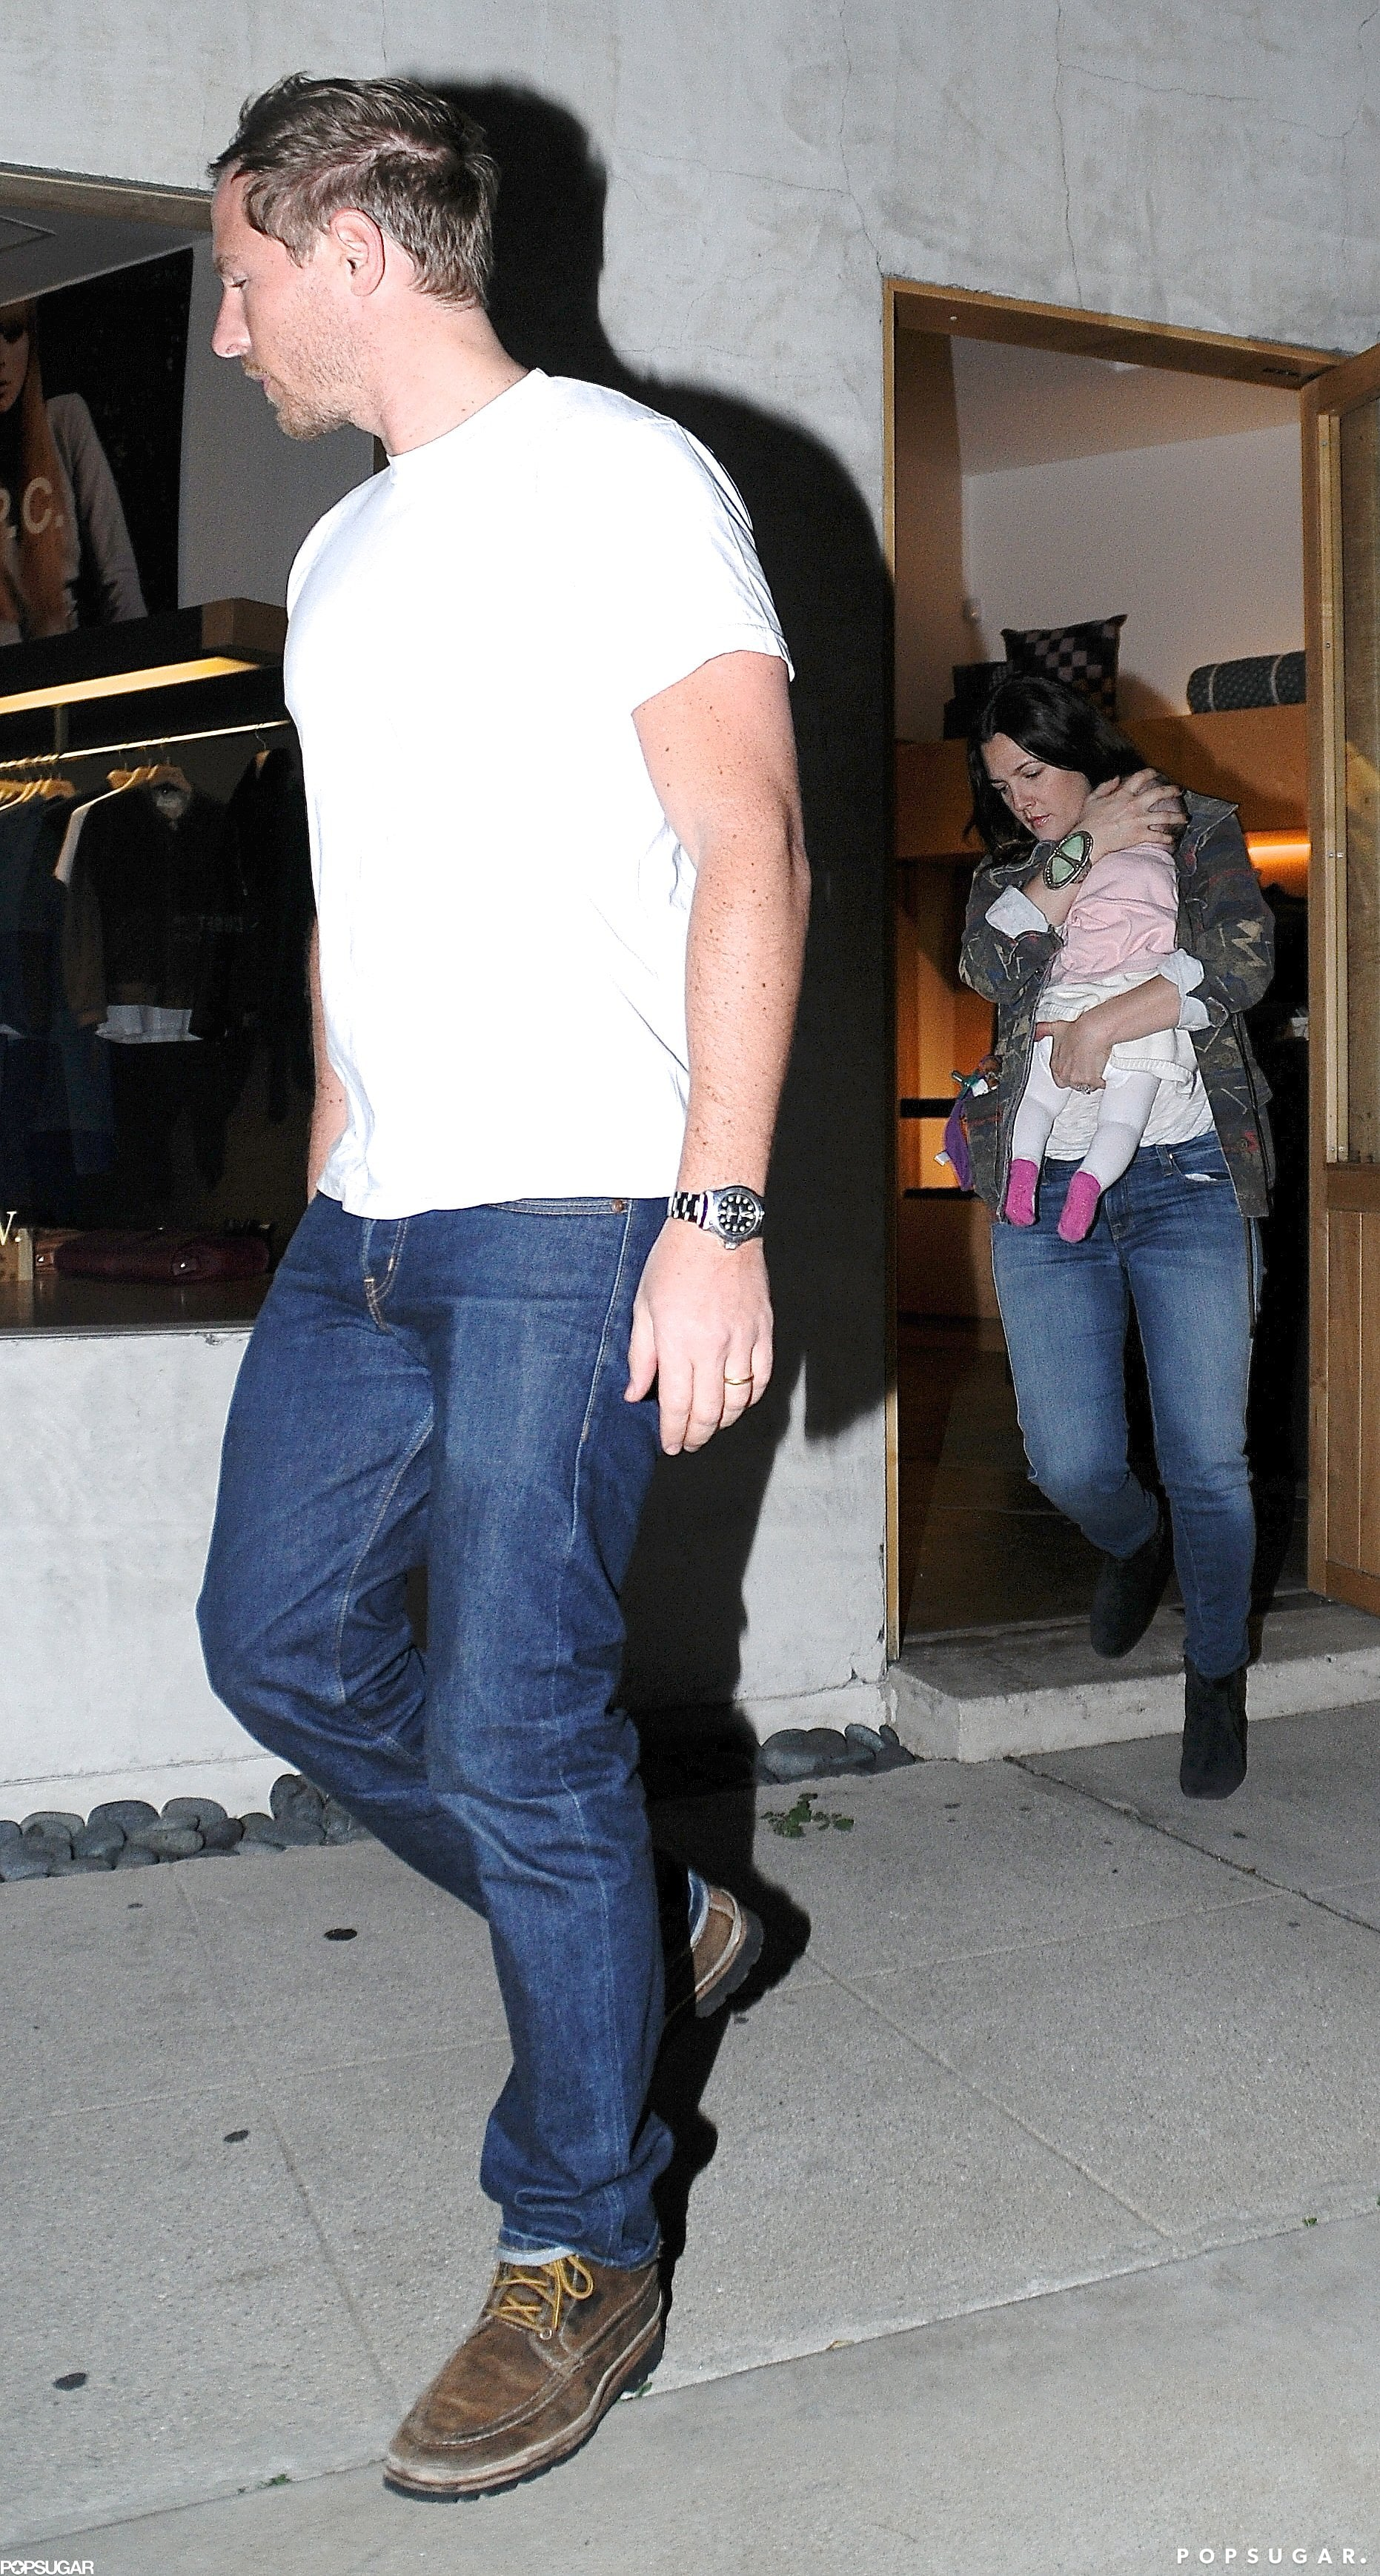 Drew Barrymore and her husband, Will Kopelman, took daughter Olive to the A.P.C. shop in West Hollywood.